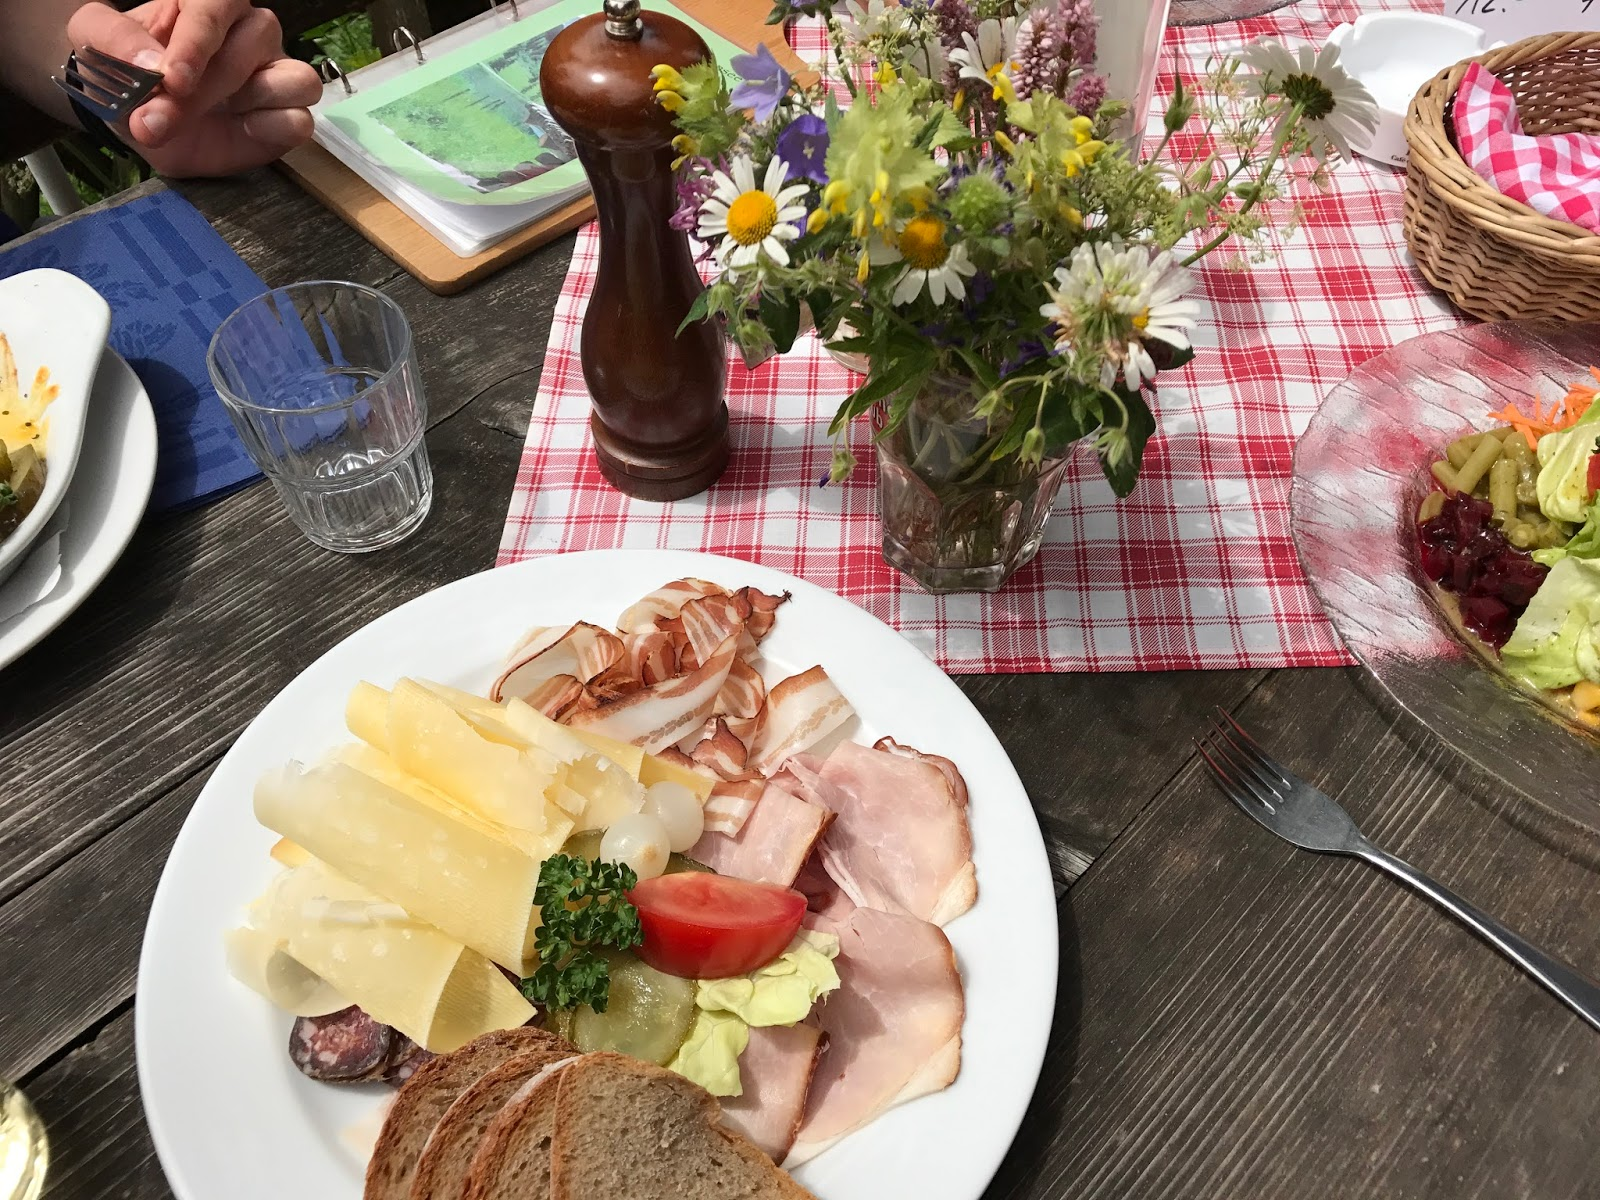 Cycling fare perfecto. Alp cheese, real bread and wafer thin meats